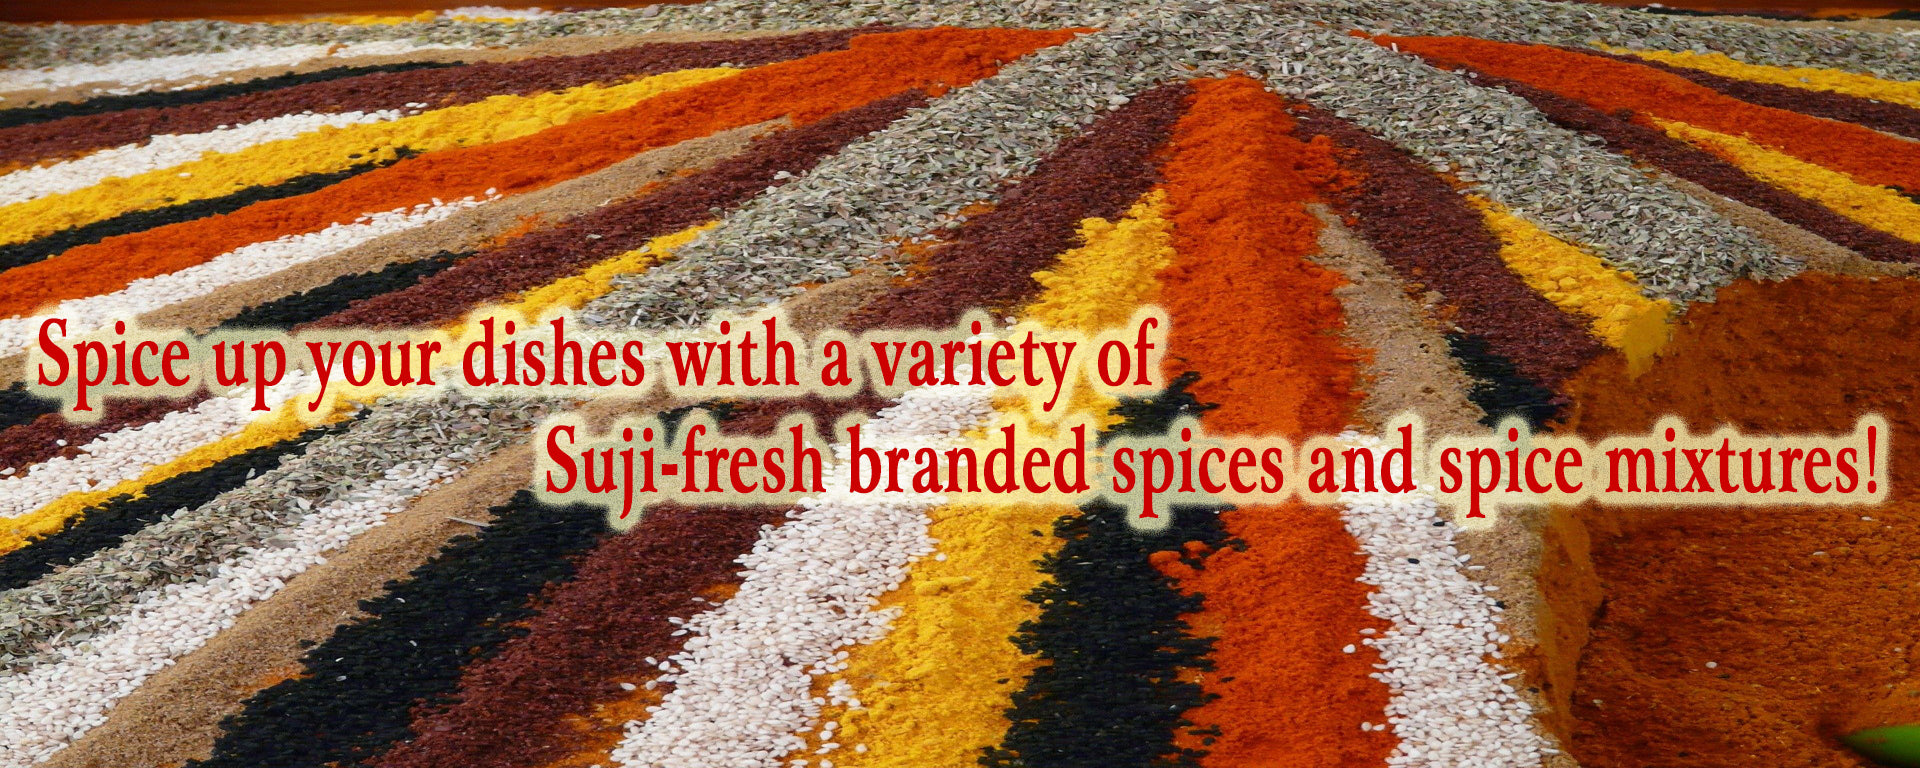 Ocean of Spices